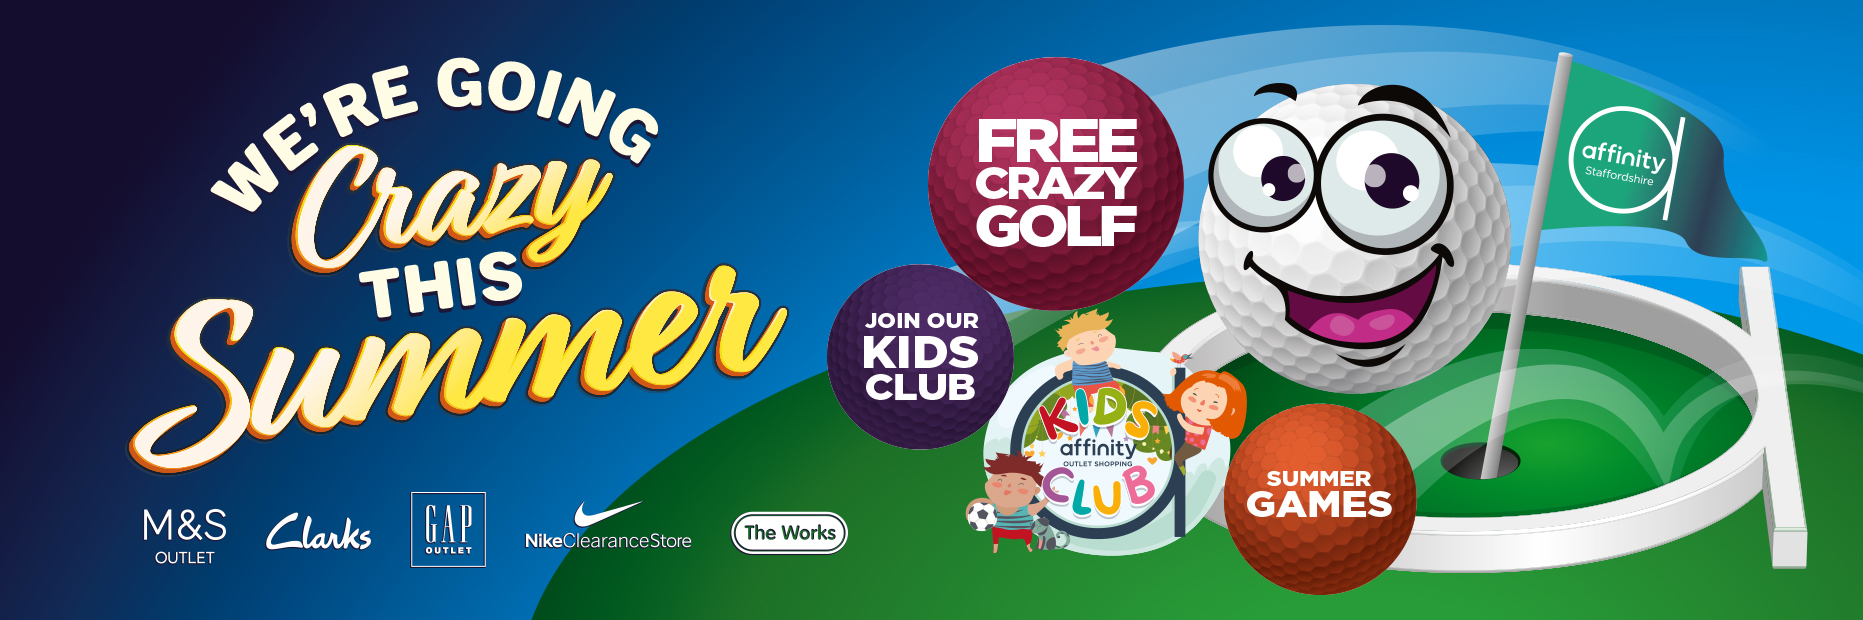 Crazy golf free affinity outlet staffordshire